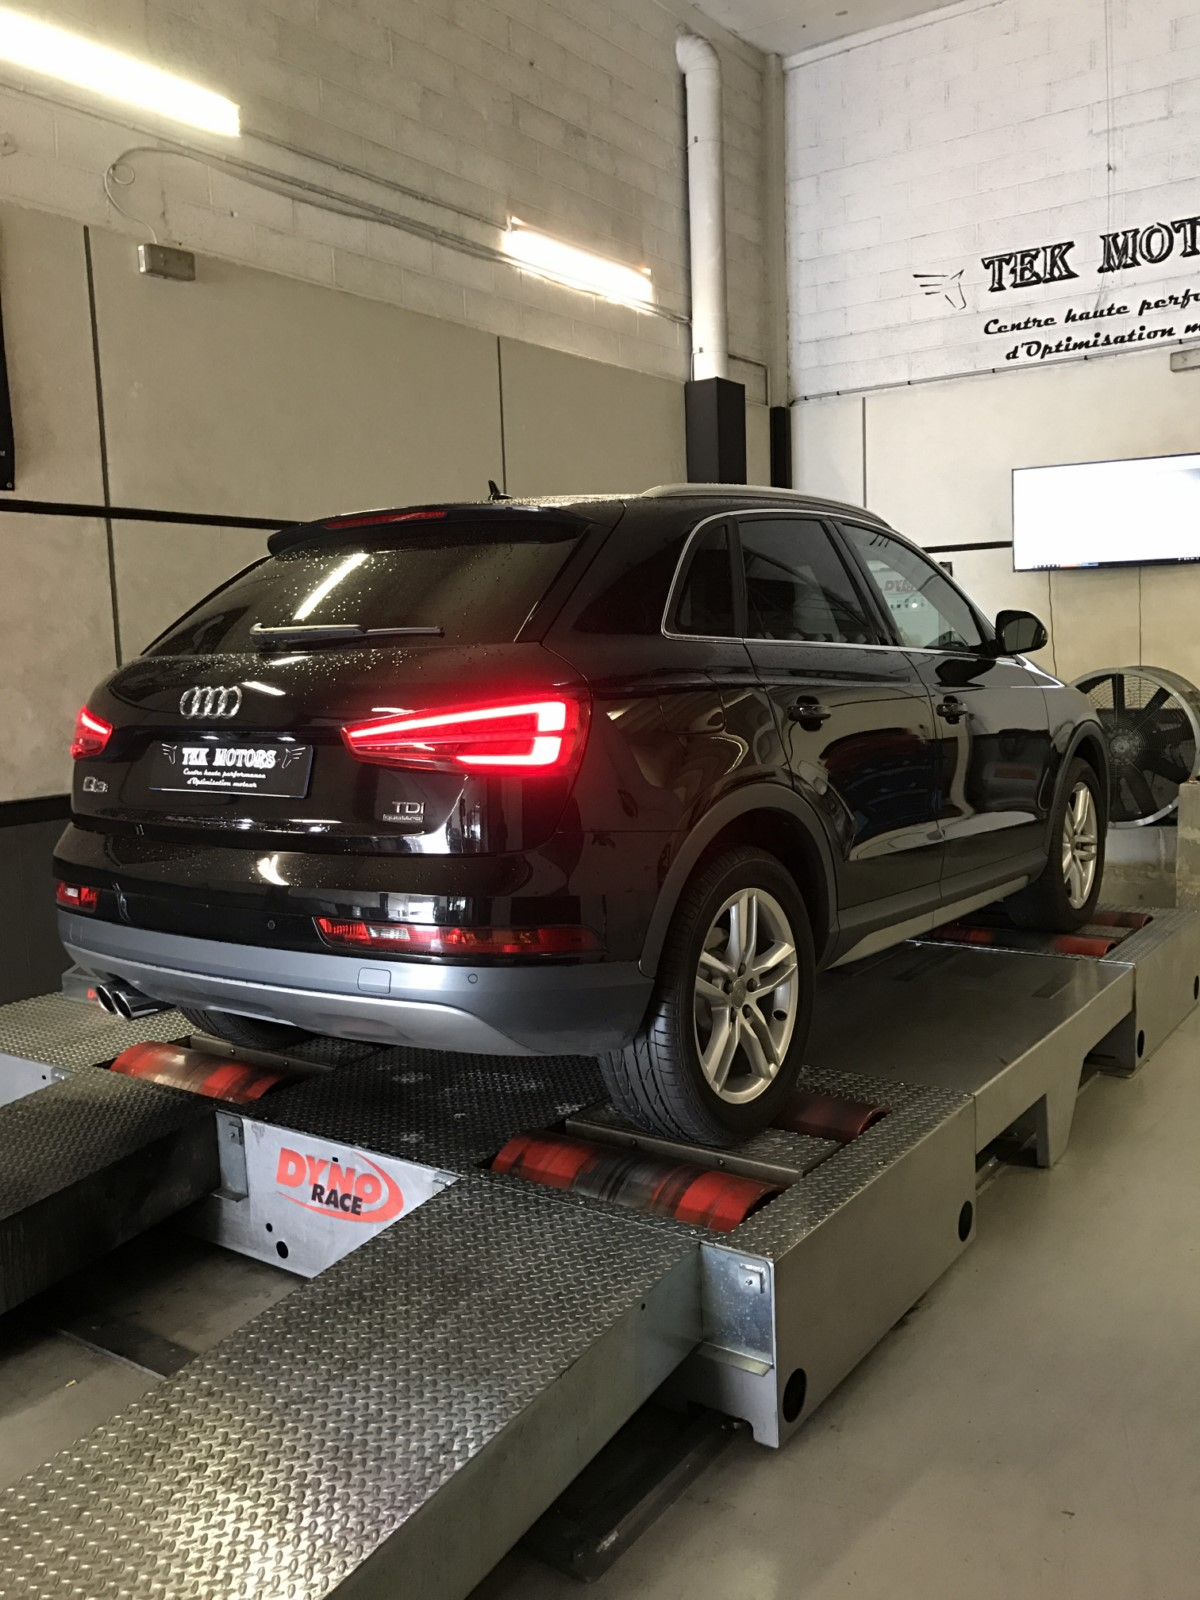 reprogrammation audi q3 2 0 150 cv ligne sur mesure inox dans le 93 bobigny tek motors. Black Bedroom Furniture Sets. Home Design Ideas